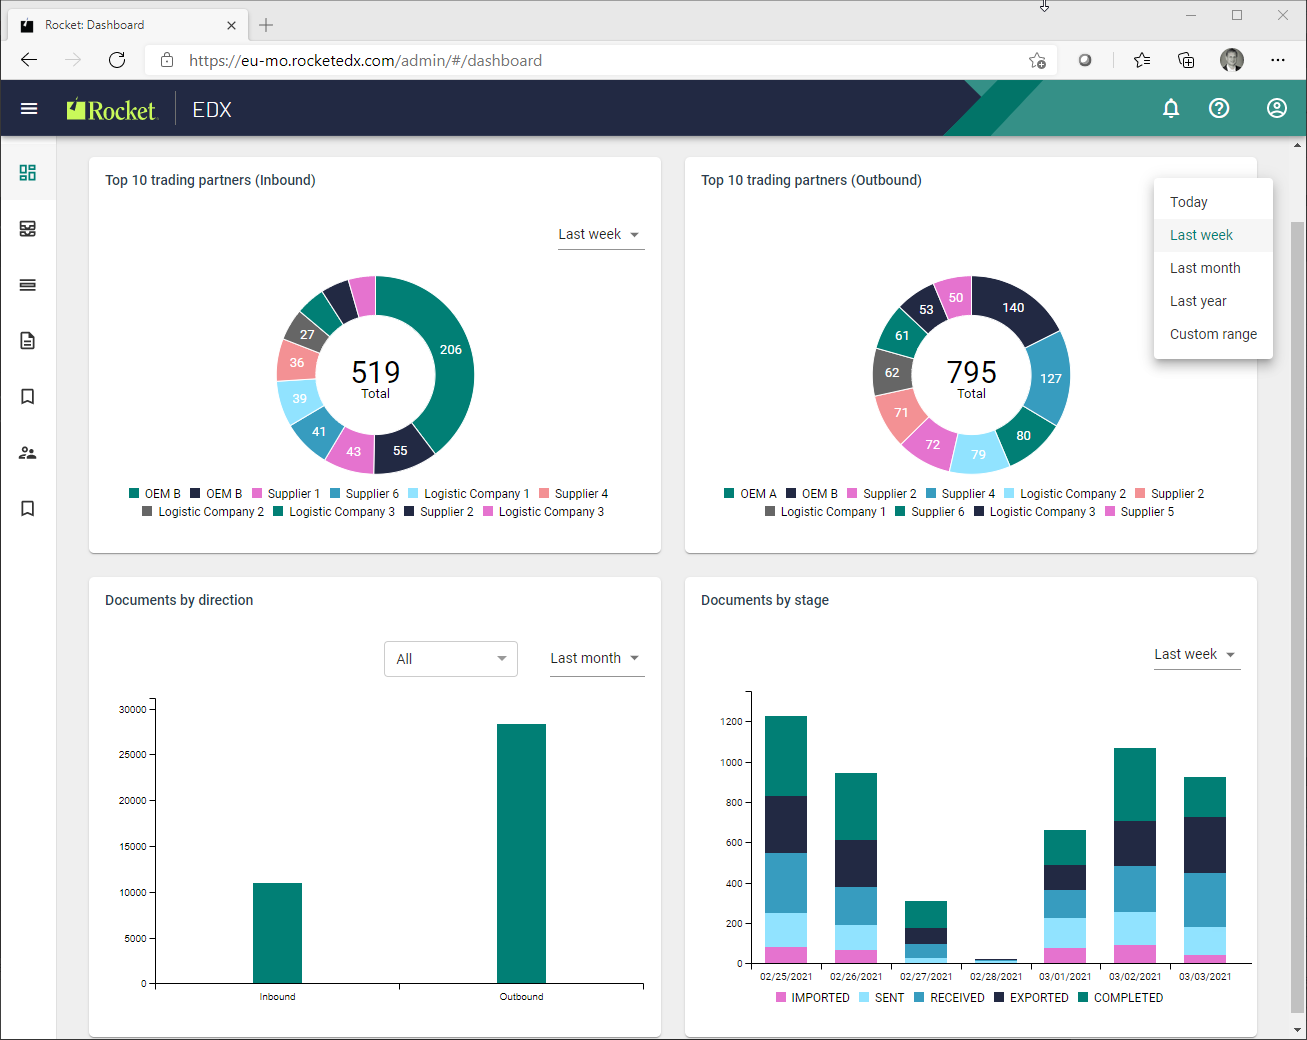 Rocket EDX dashboard view